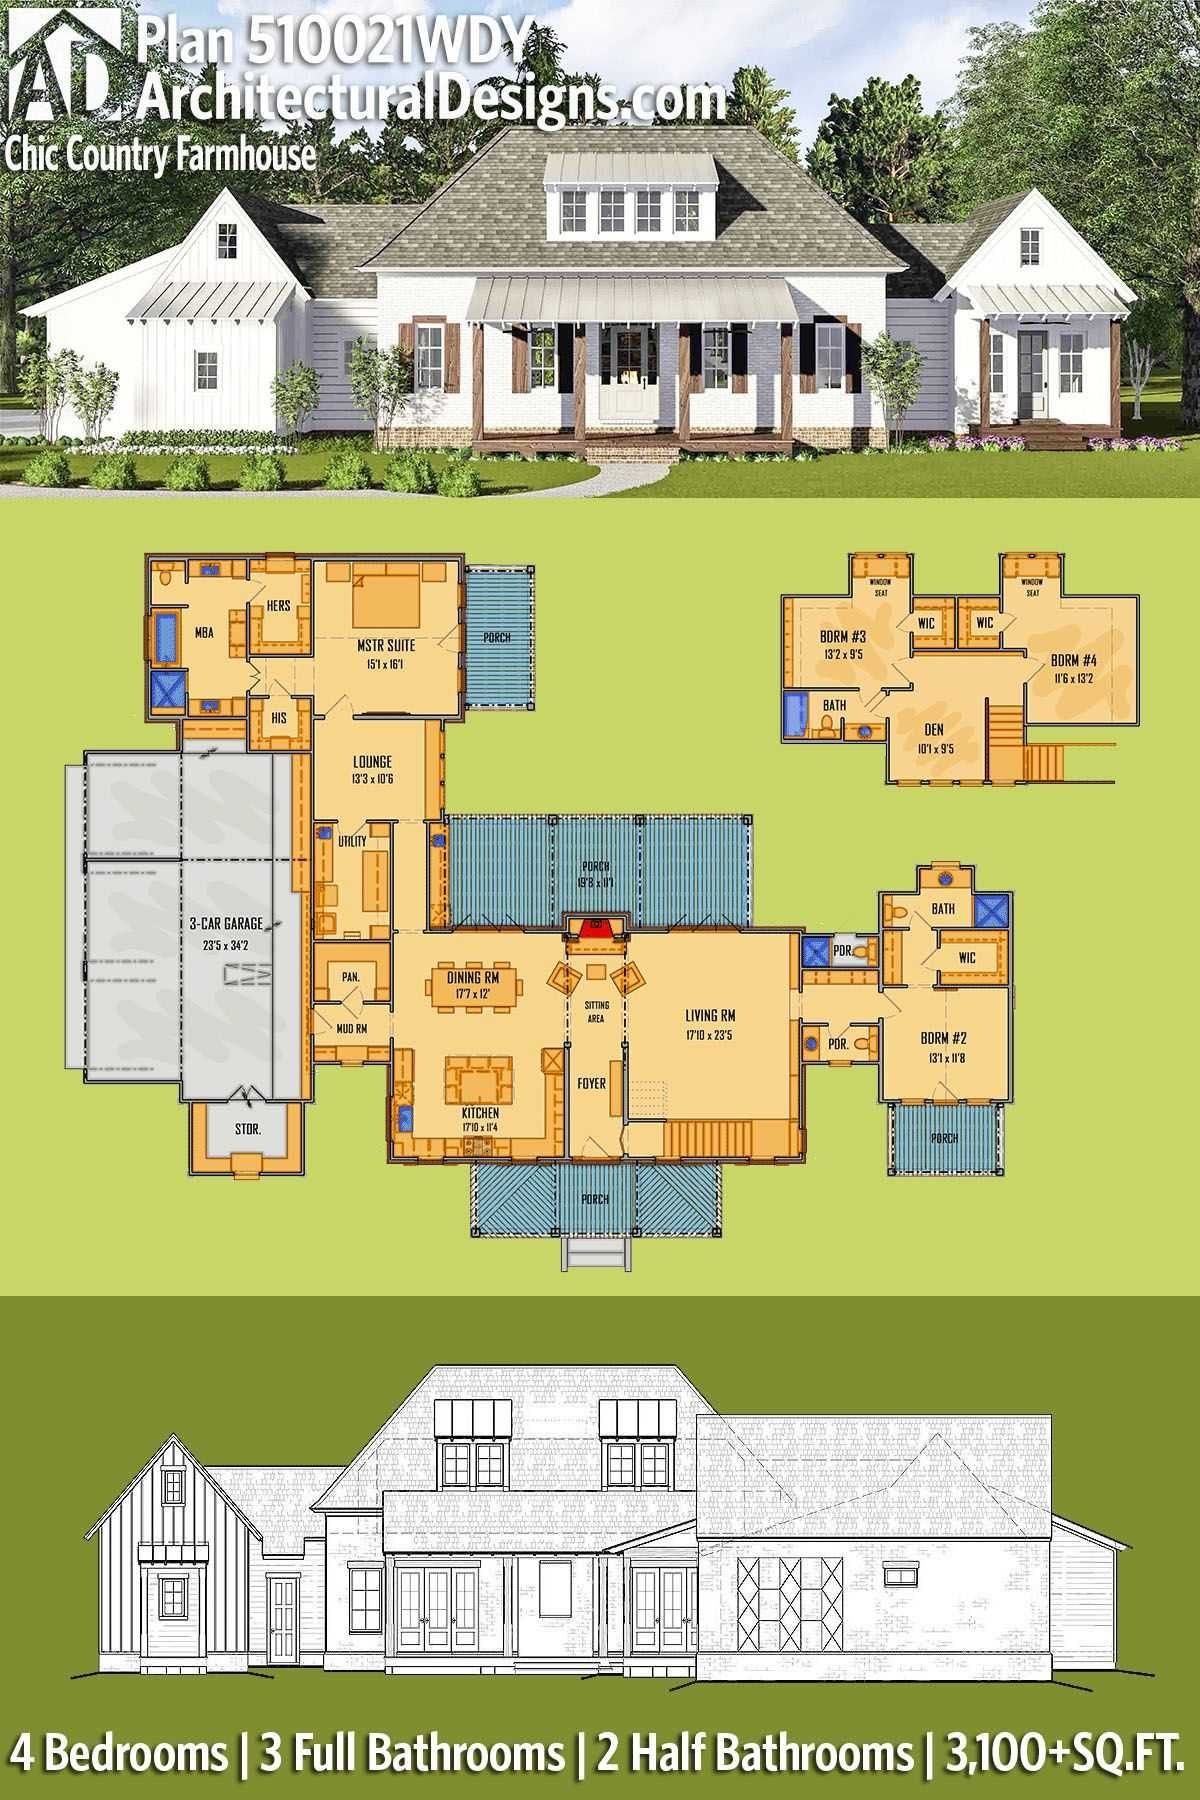 American farmhouse architecture awesome american farmhouse architecture small tudor house plans fresh modern american foursquare house plans